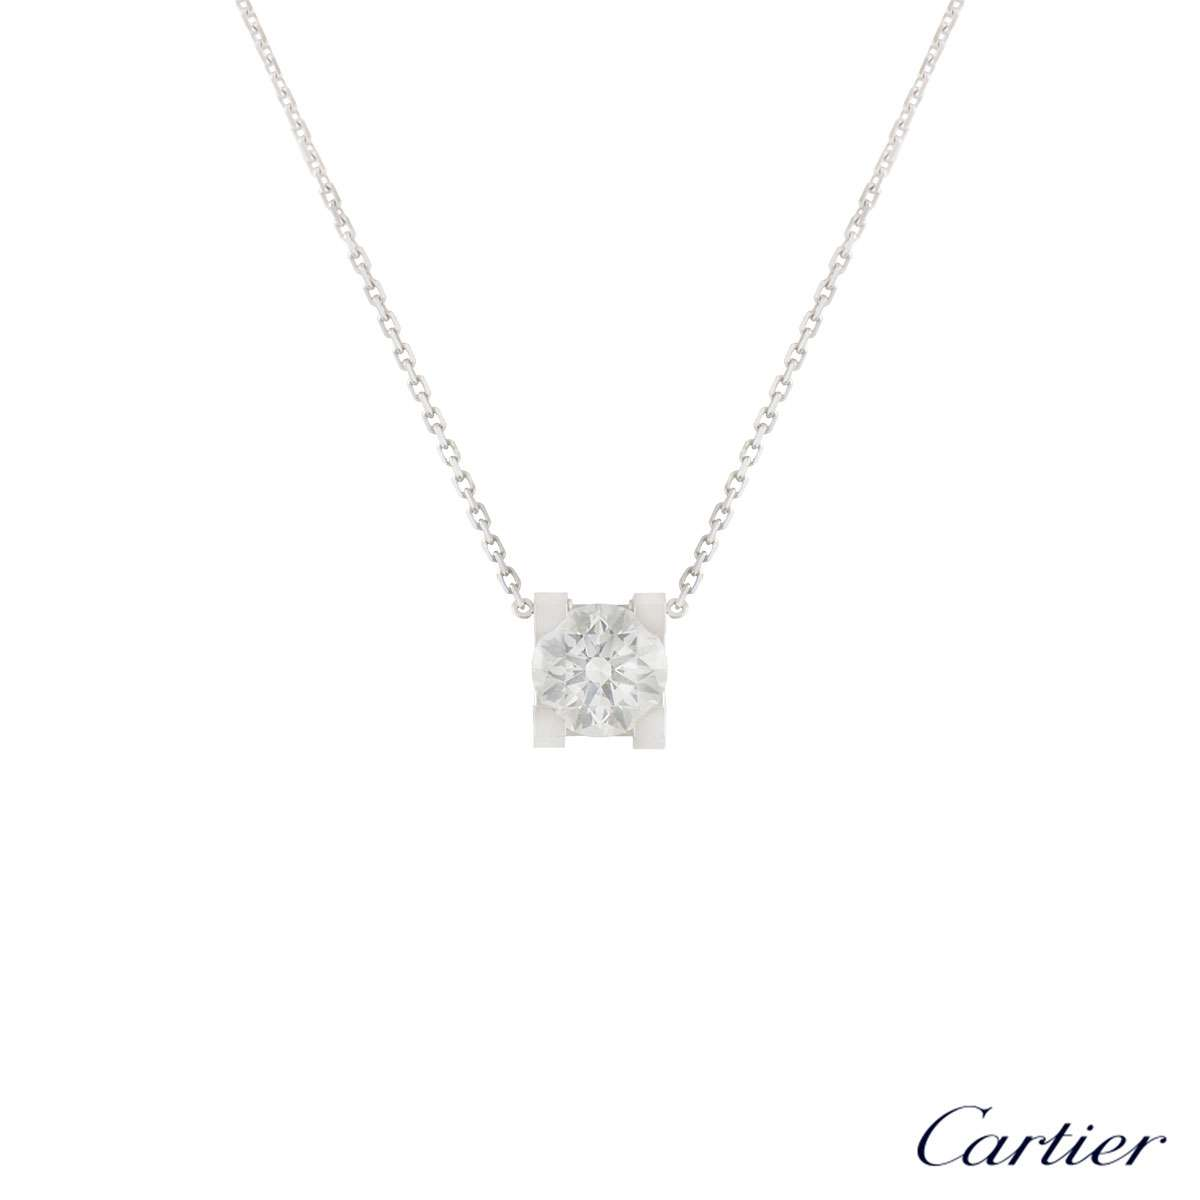 Cartier C de Cartier Diamond Necklace 1.24ct F/VVS1 XXX